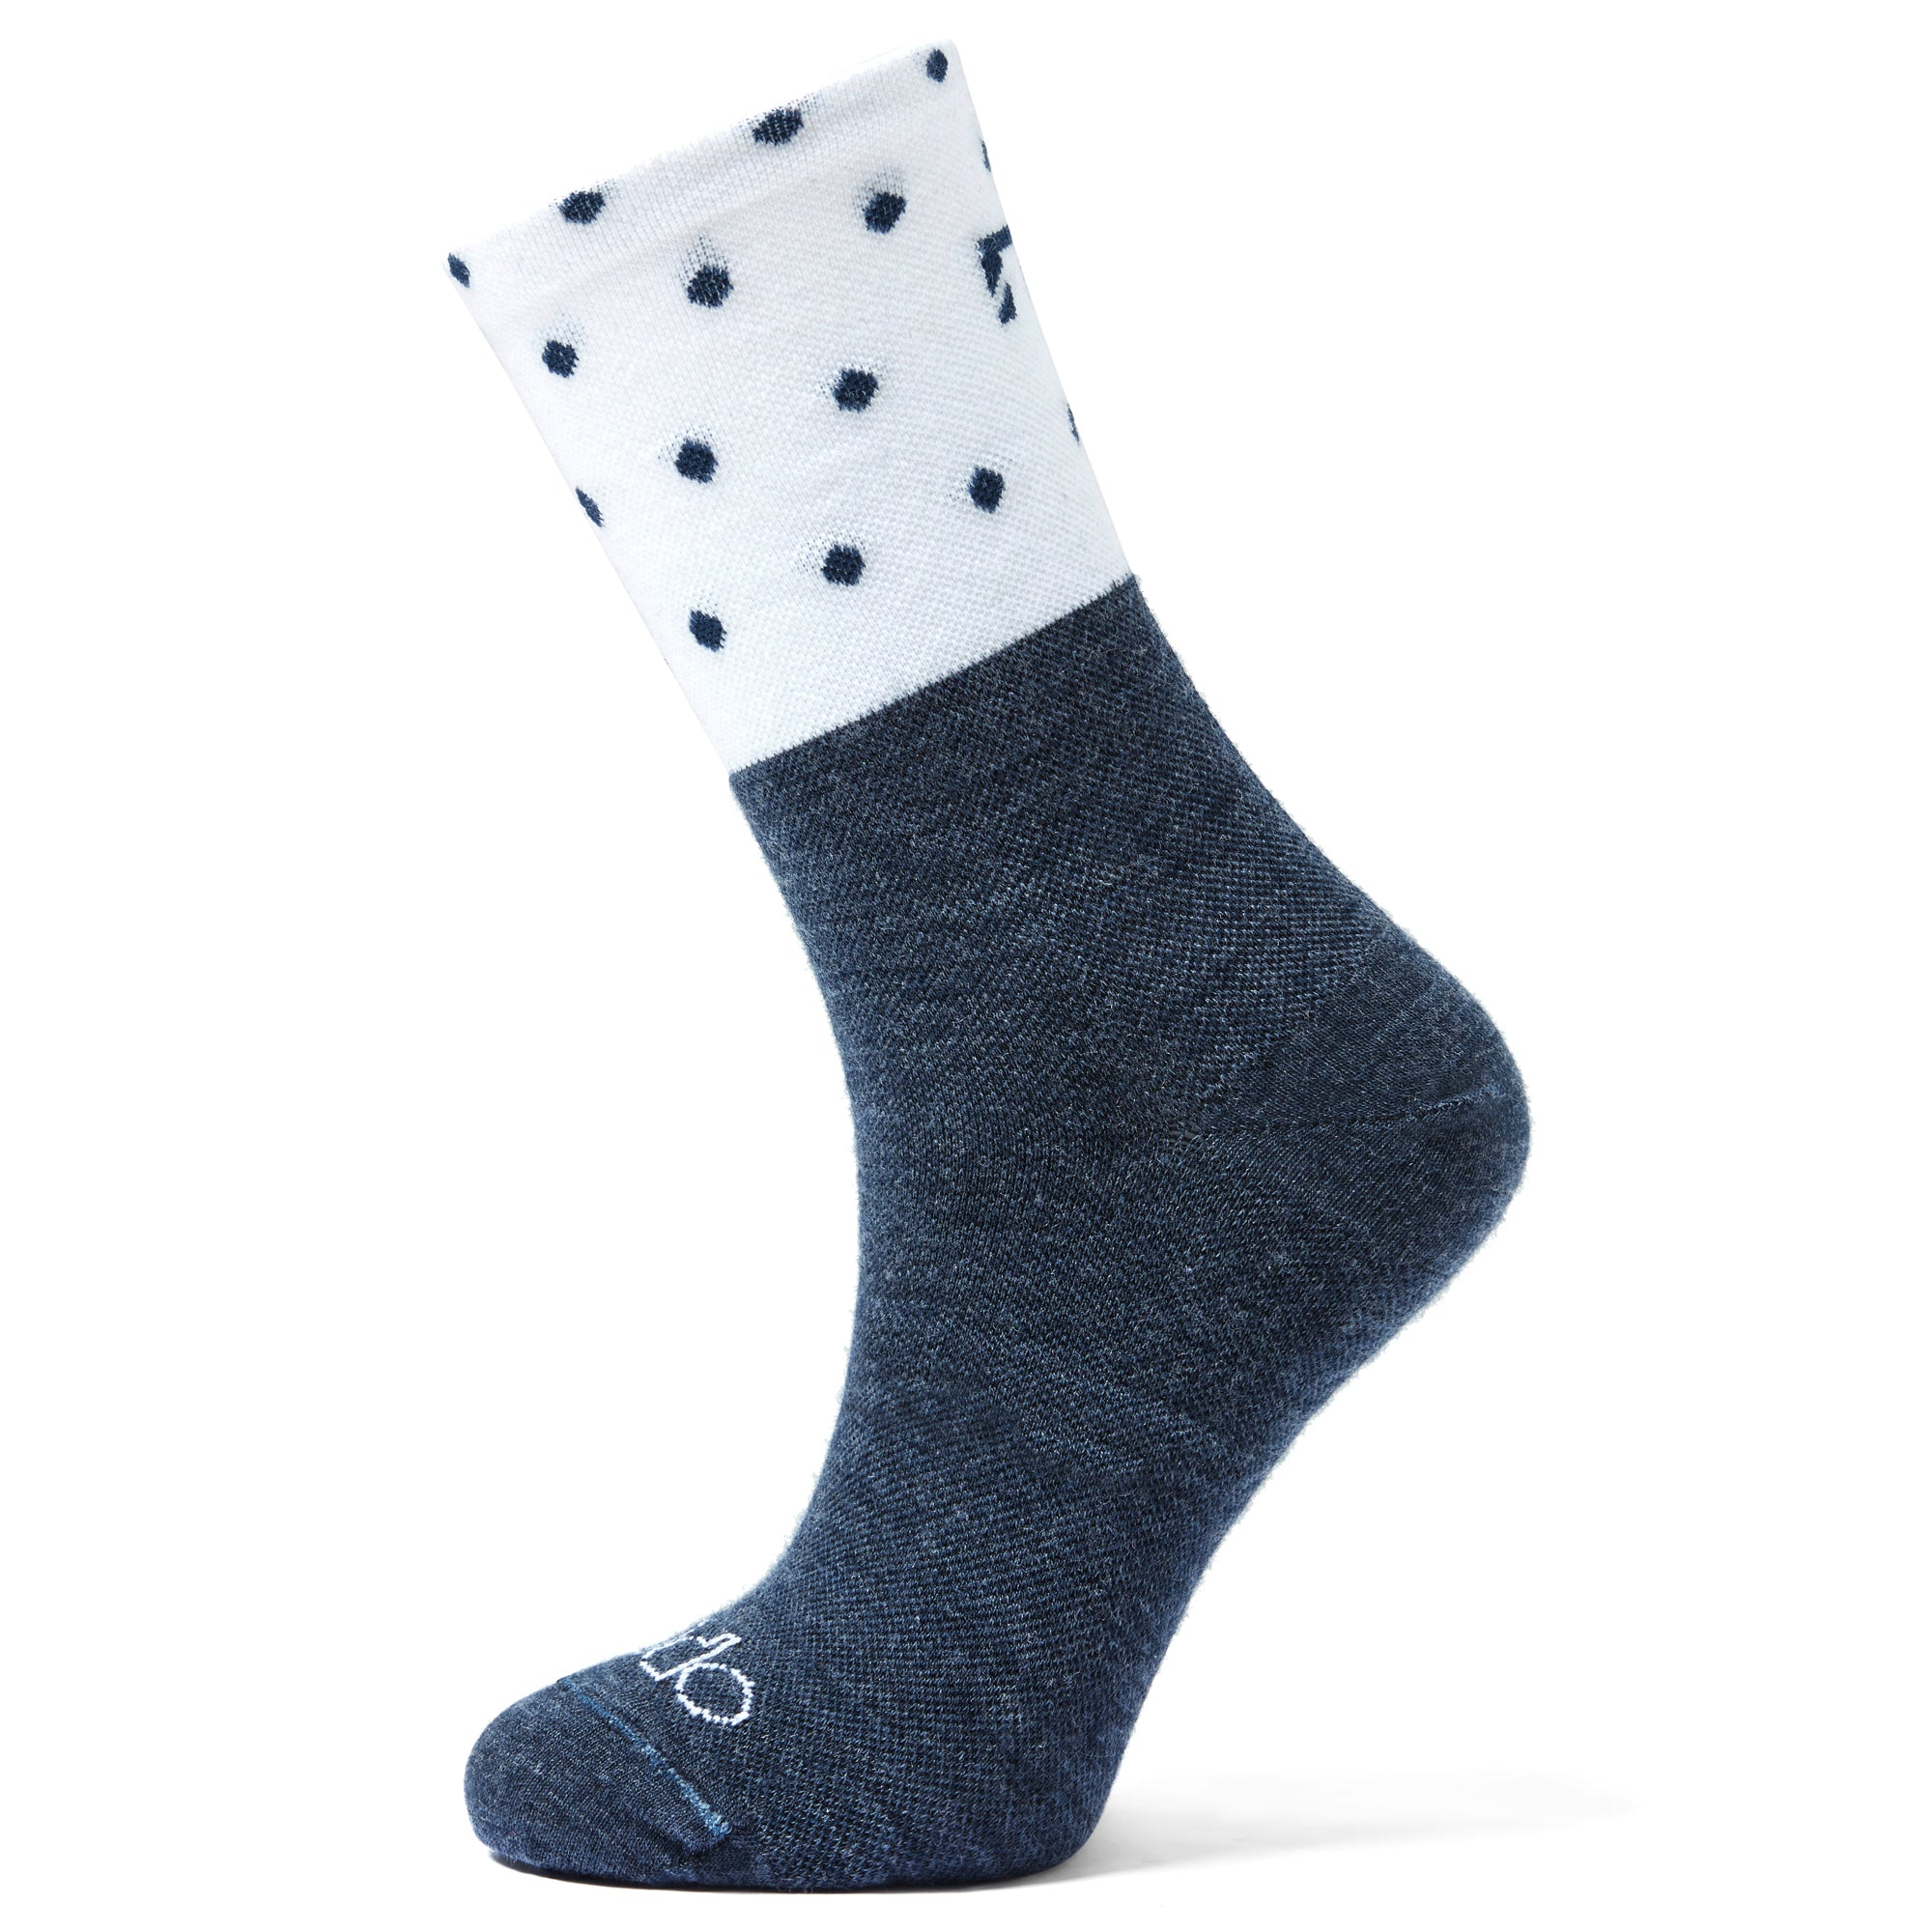 All Season Merino Wool - Blue & White Polka Dots